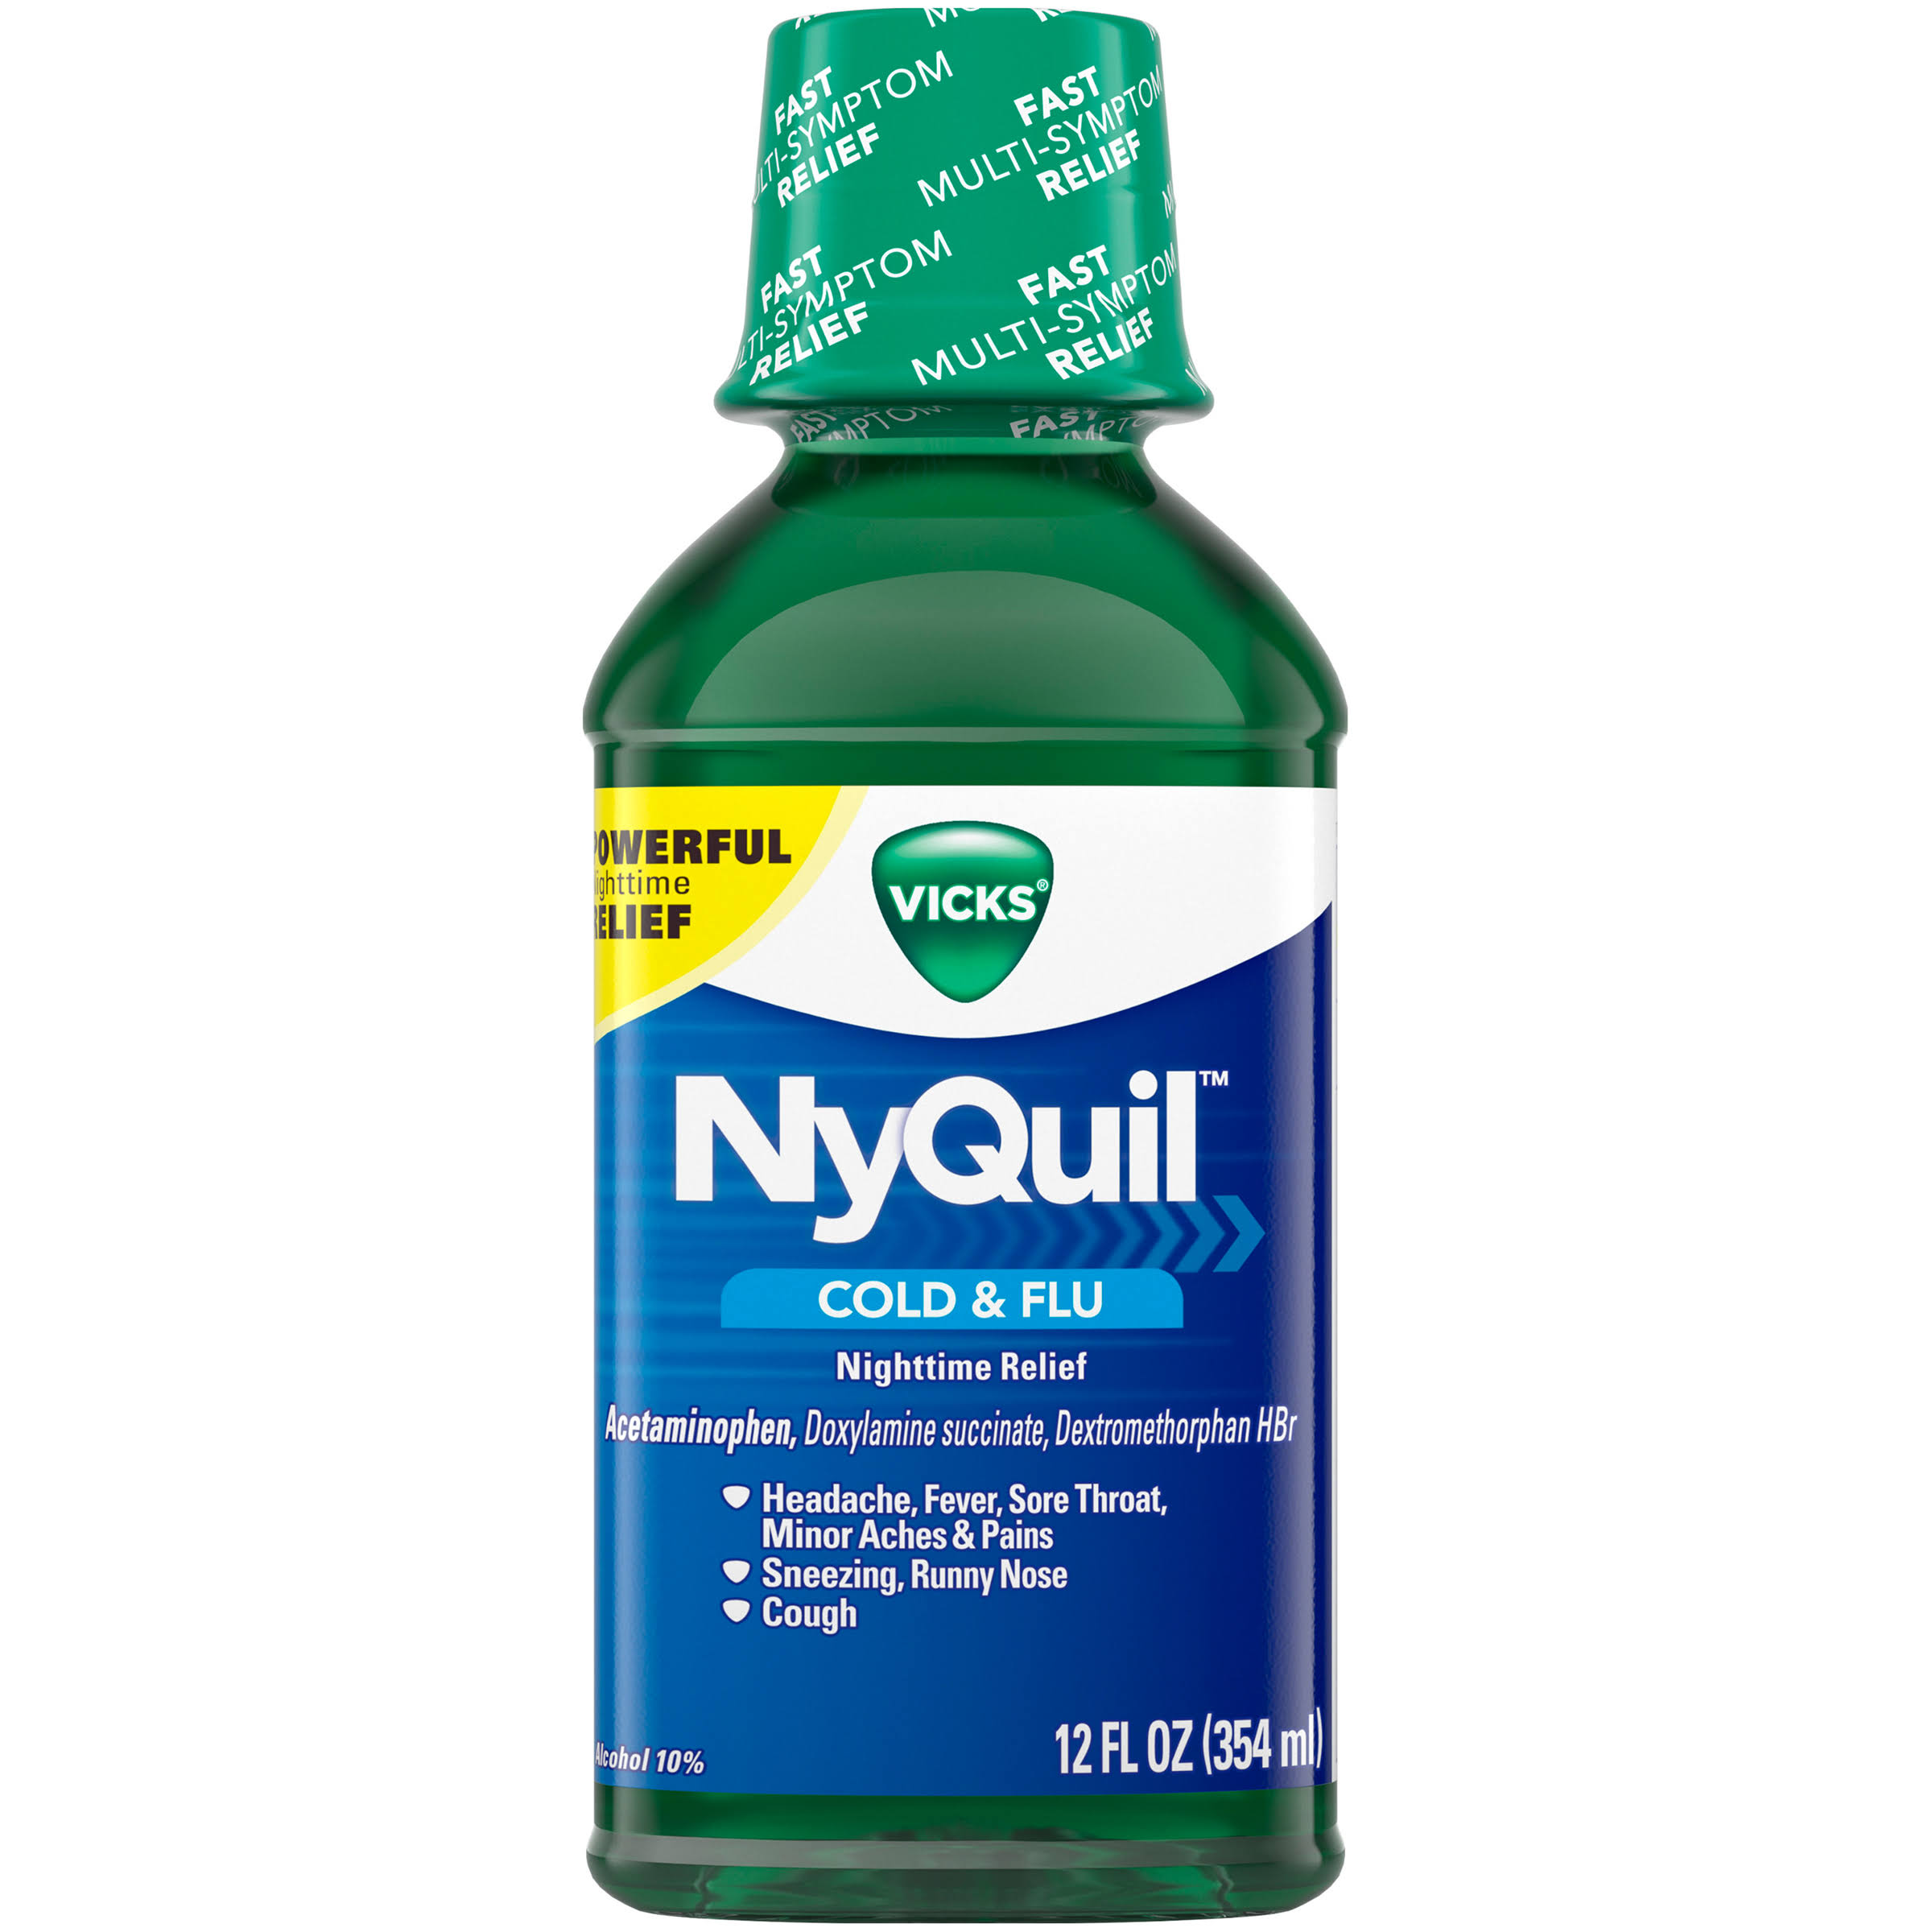 Vicks NyQuil Cold & Flu Nighttime Relief - 12 fl oz